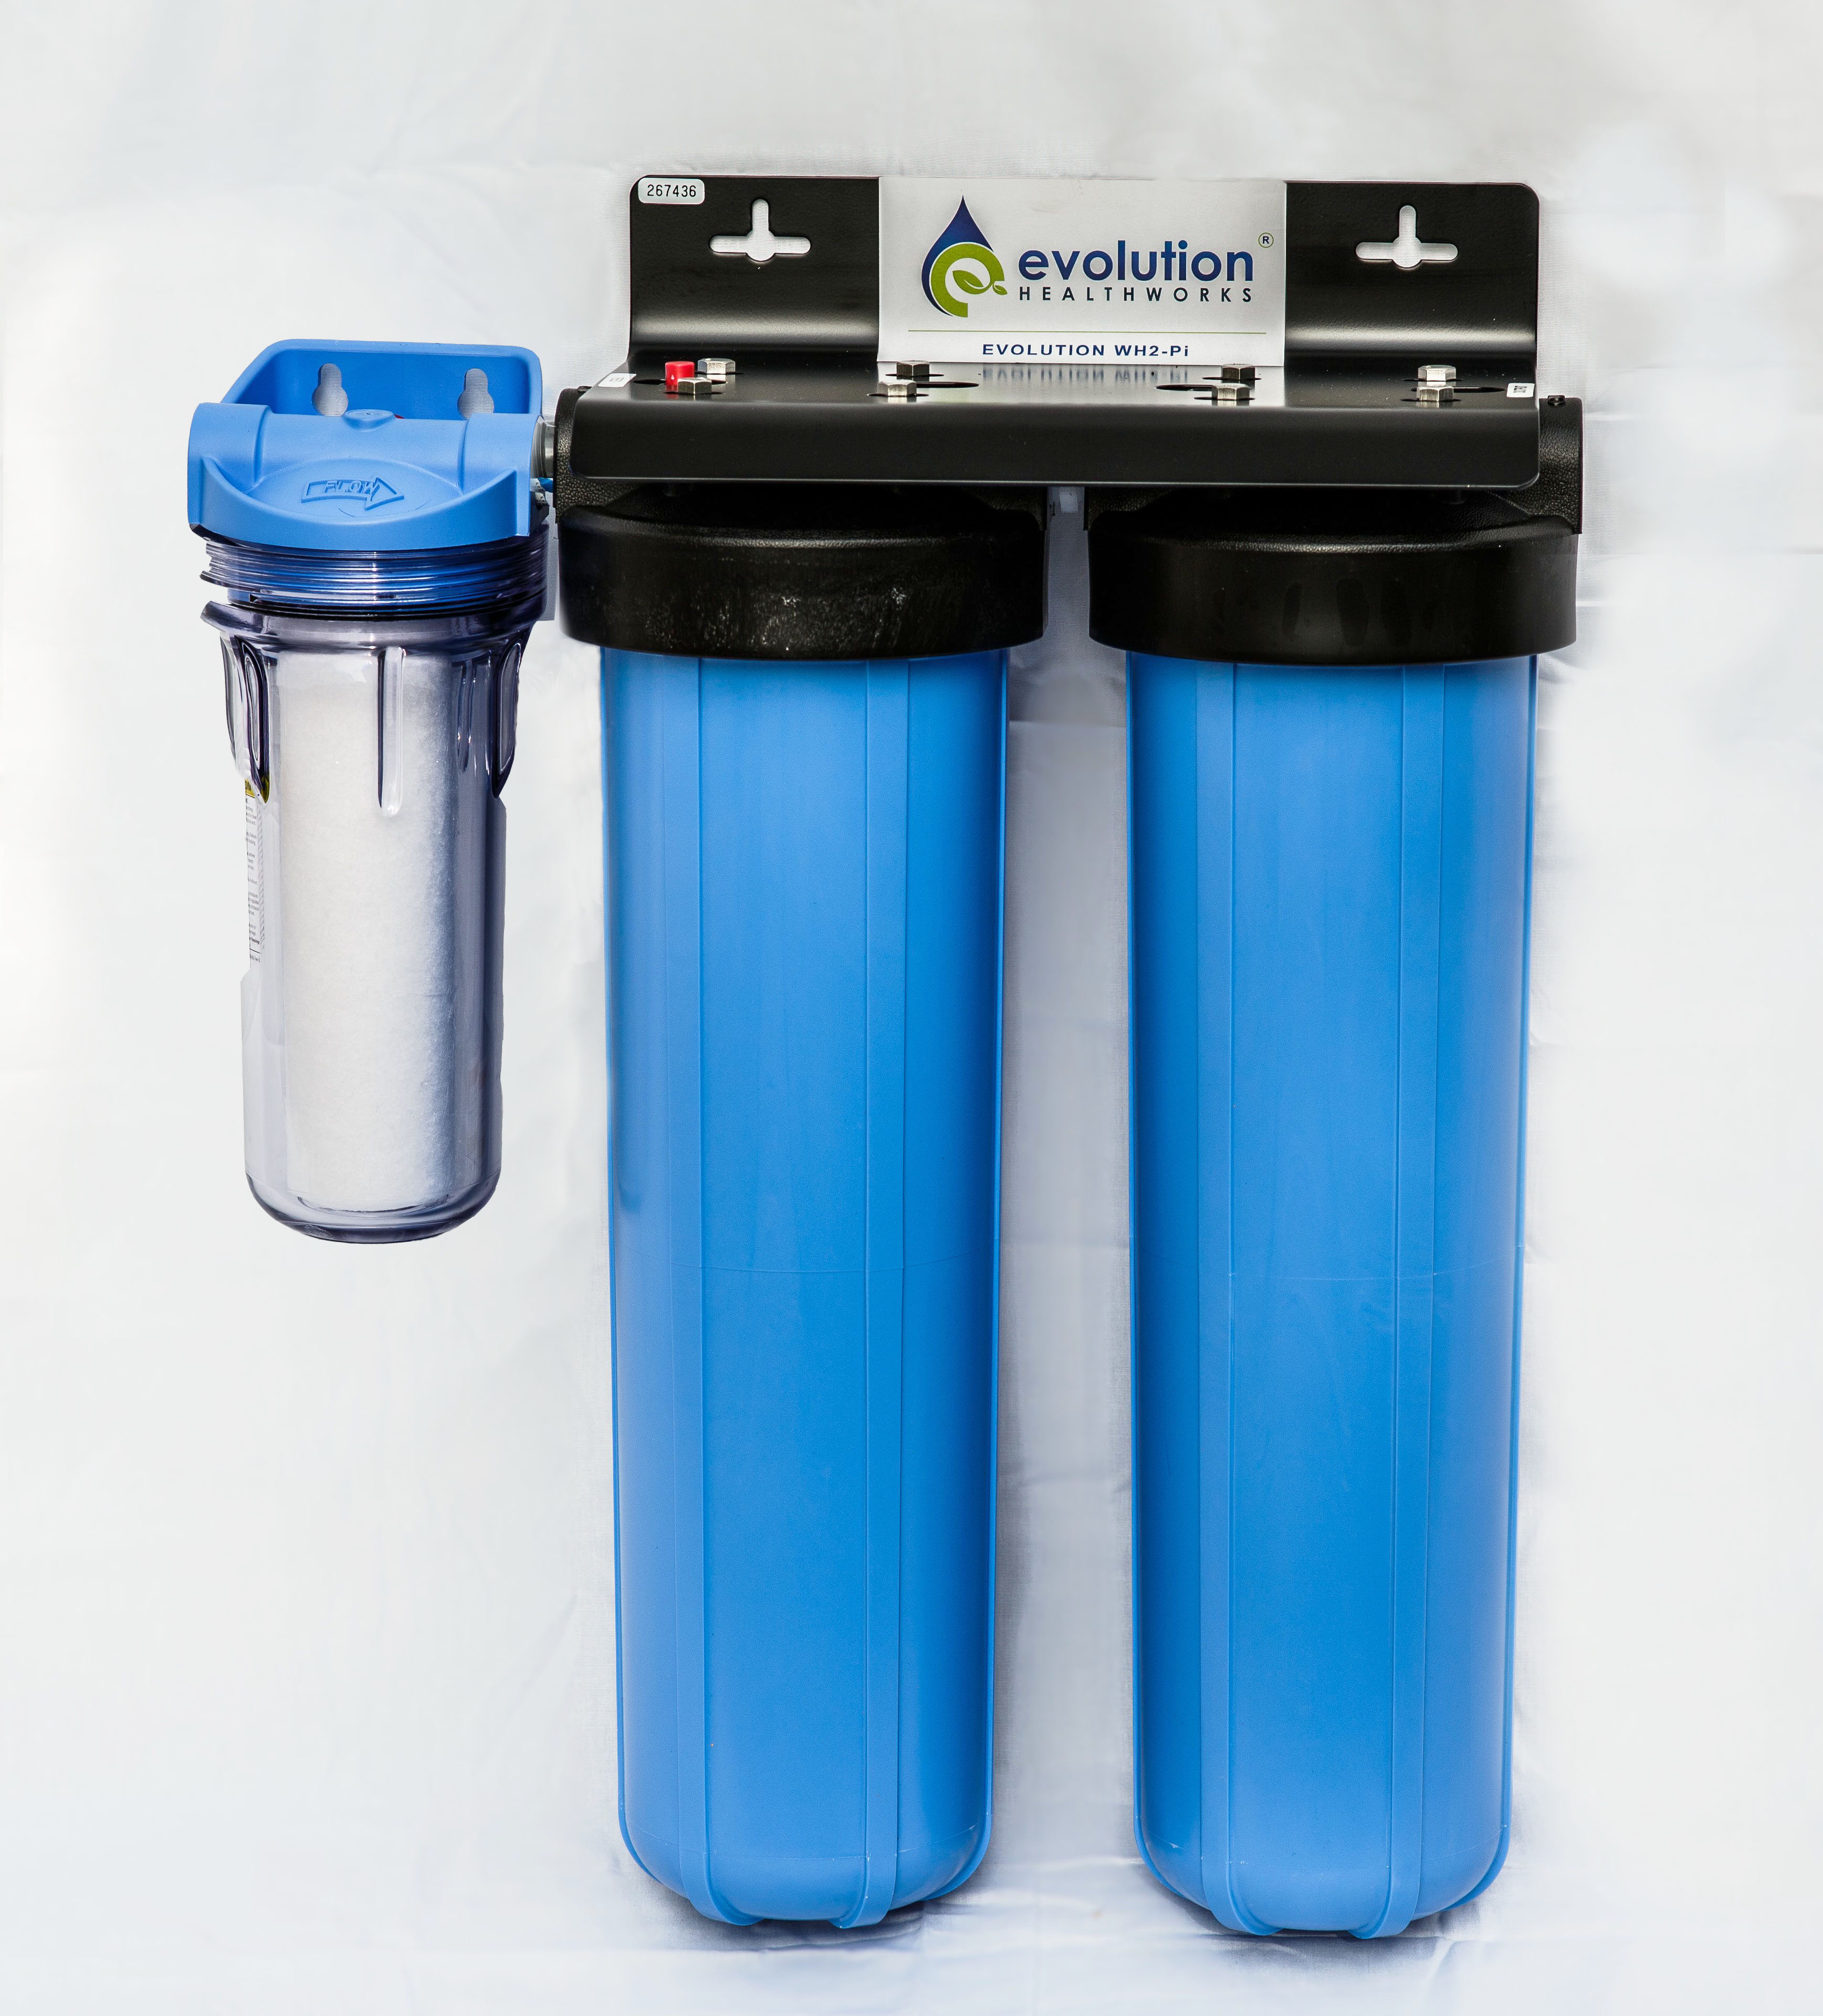 Home Water Conditioner Whole Home System Evolution Healthworks